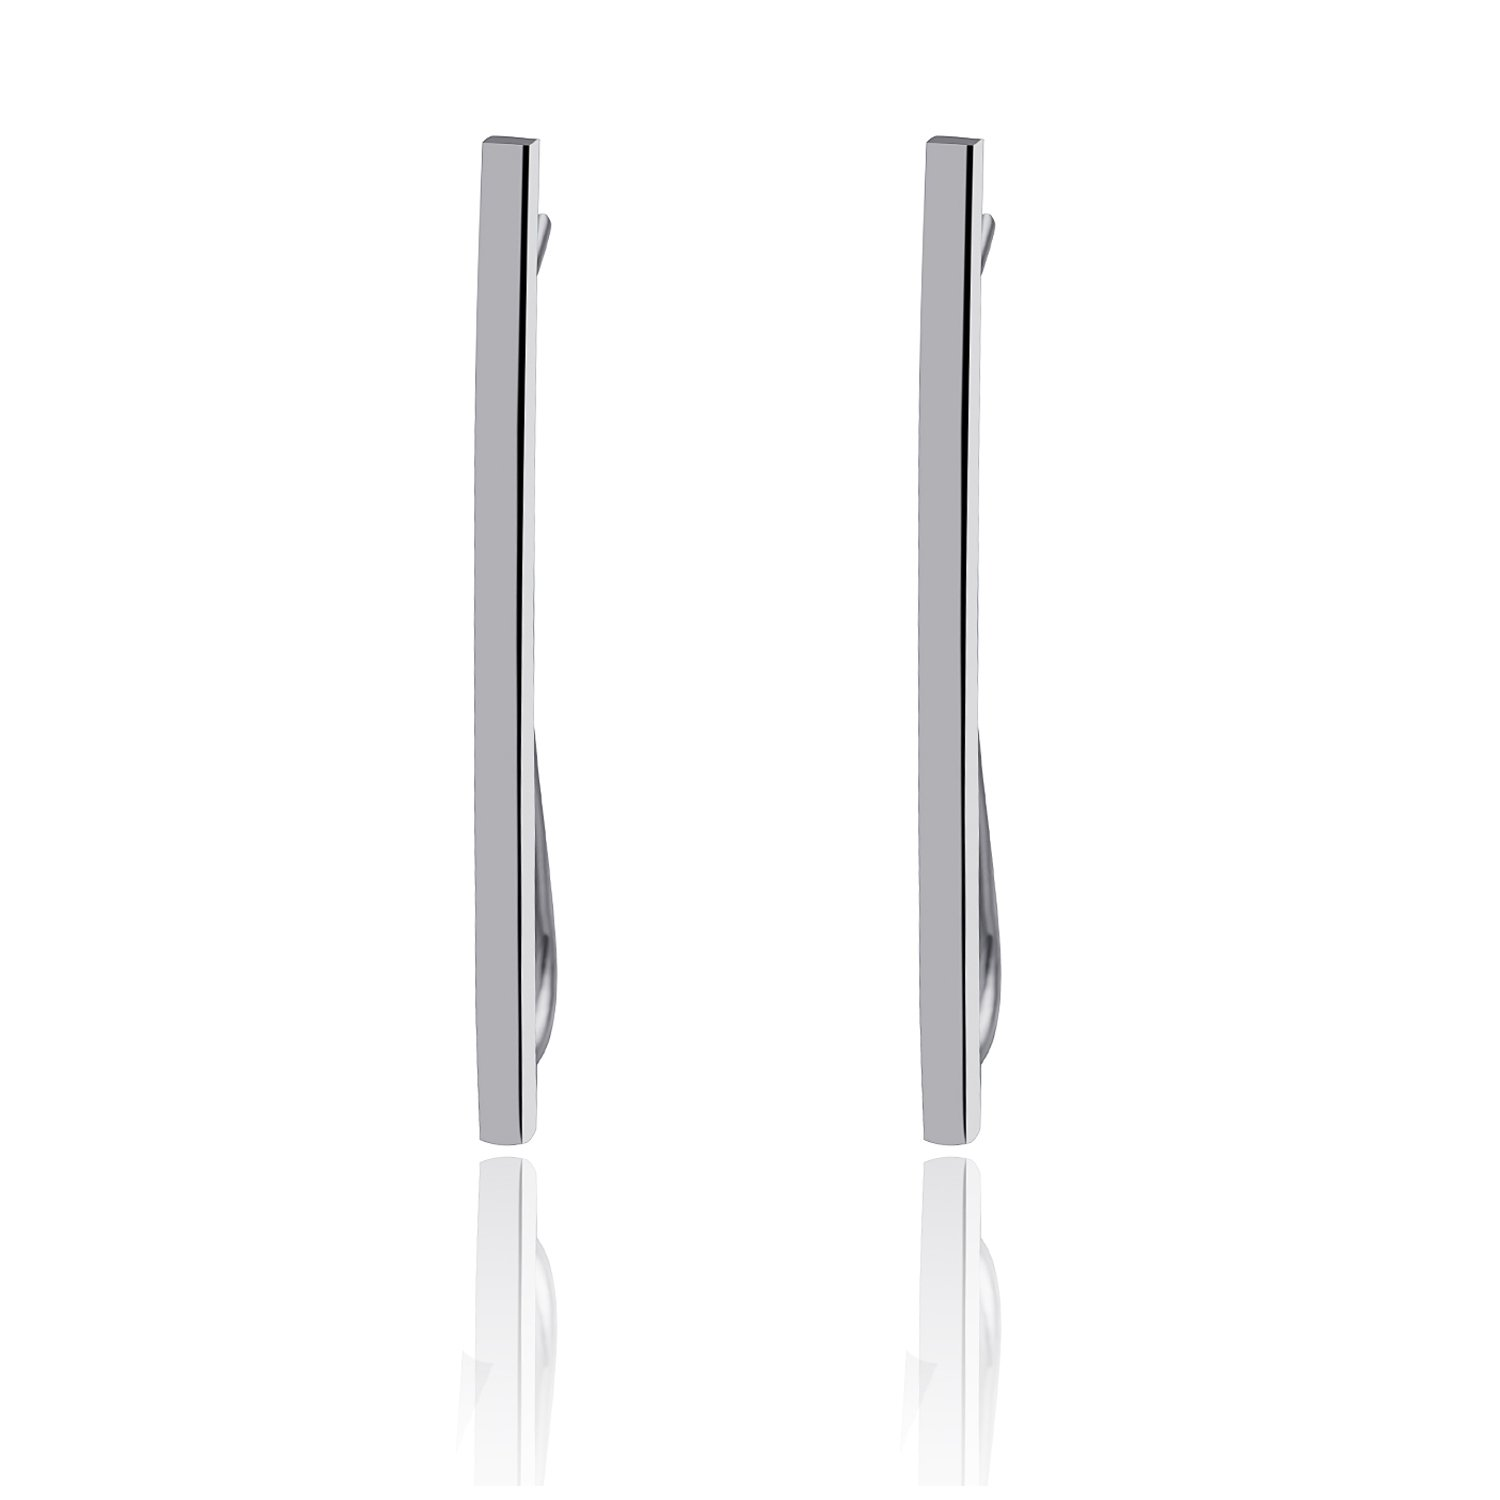 CIShop Minimalist ''Balance'' Bar Sterling Silver Dangle Drop Ear Climber Earrings